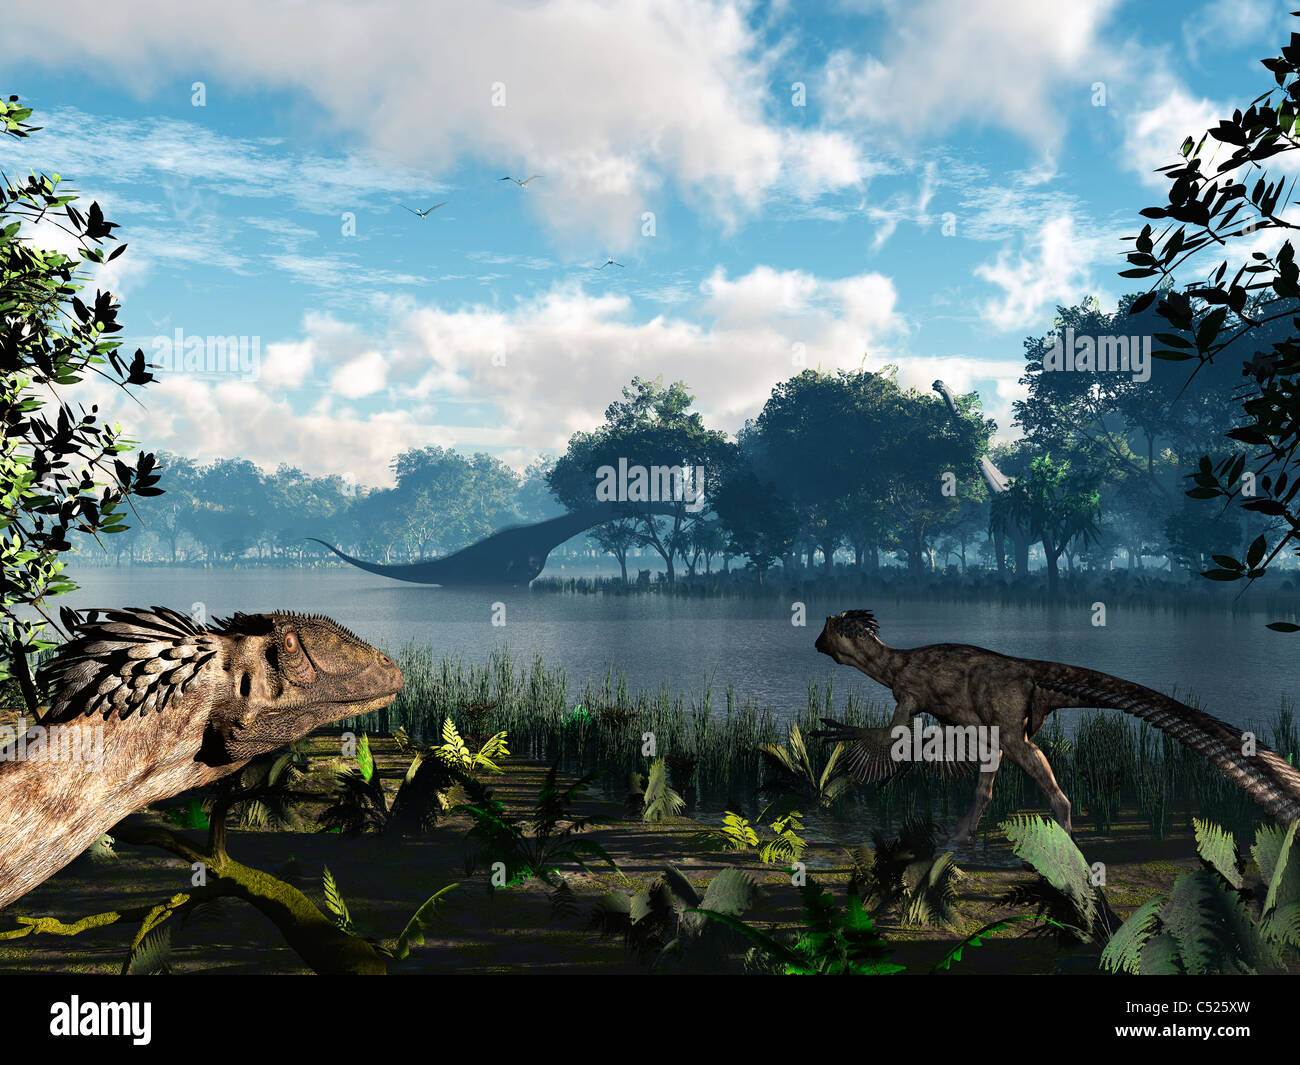 Sauroposeidon graze while feathered Deinonychus look on. - Stock Image